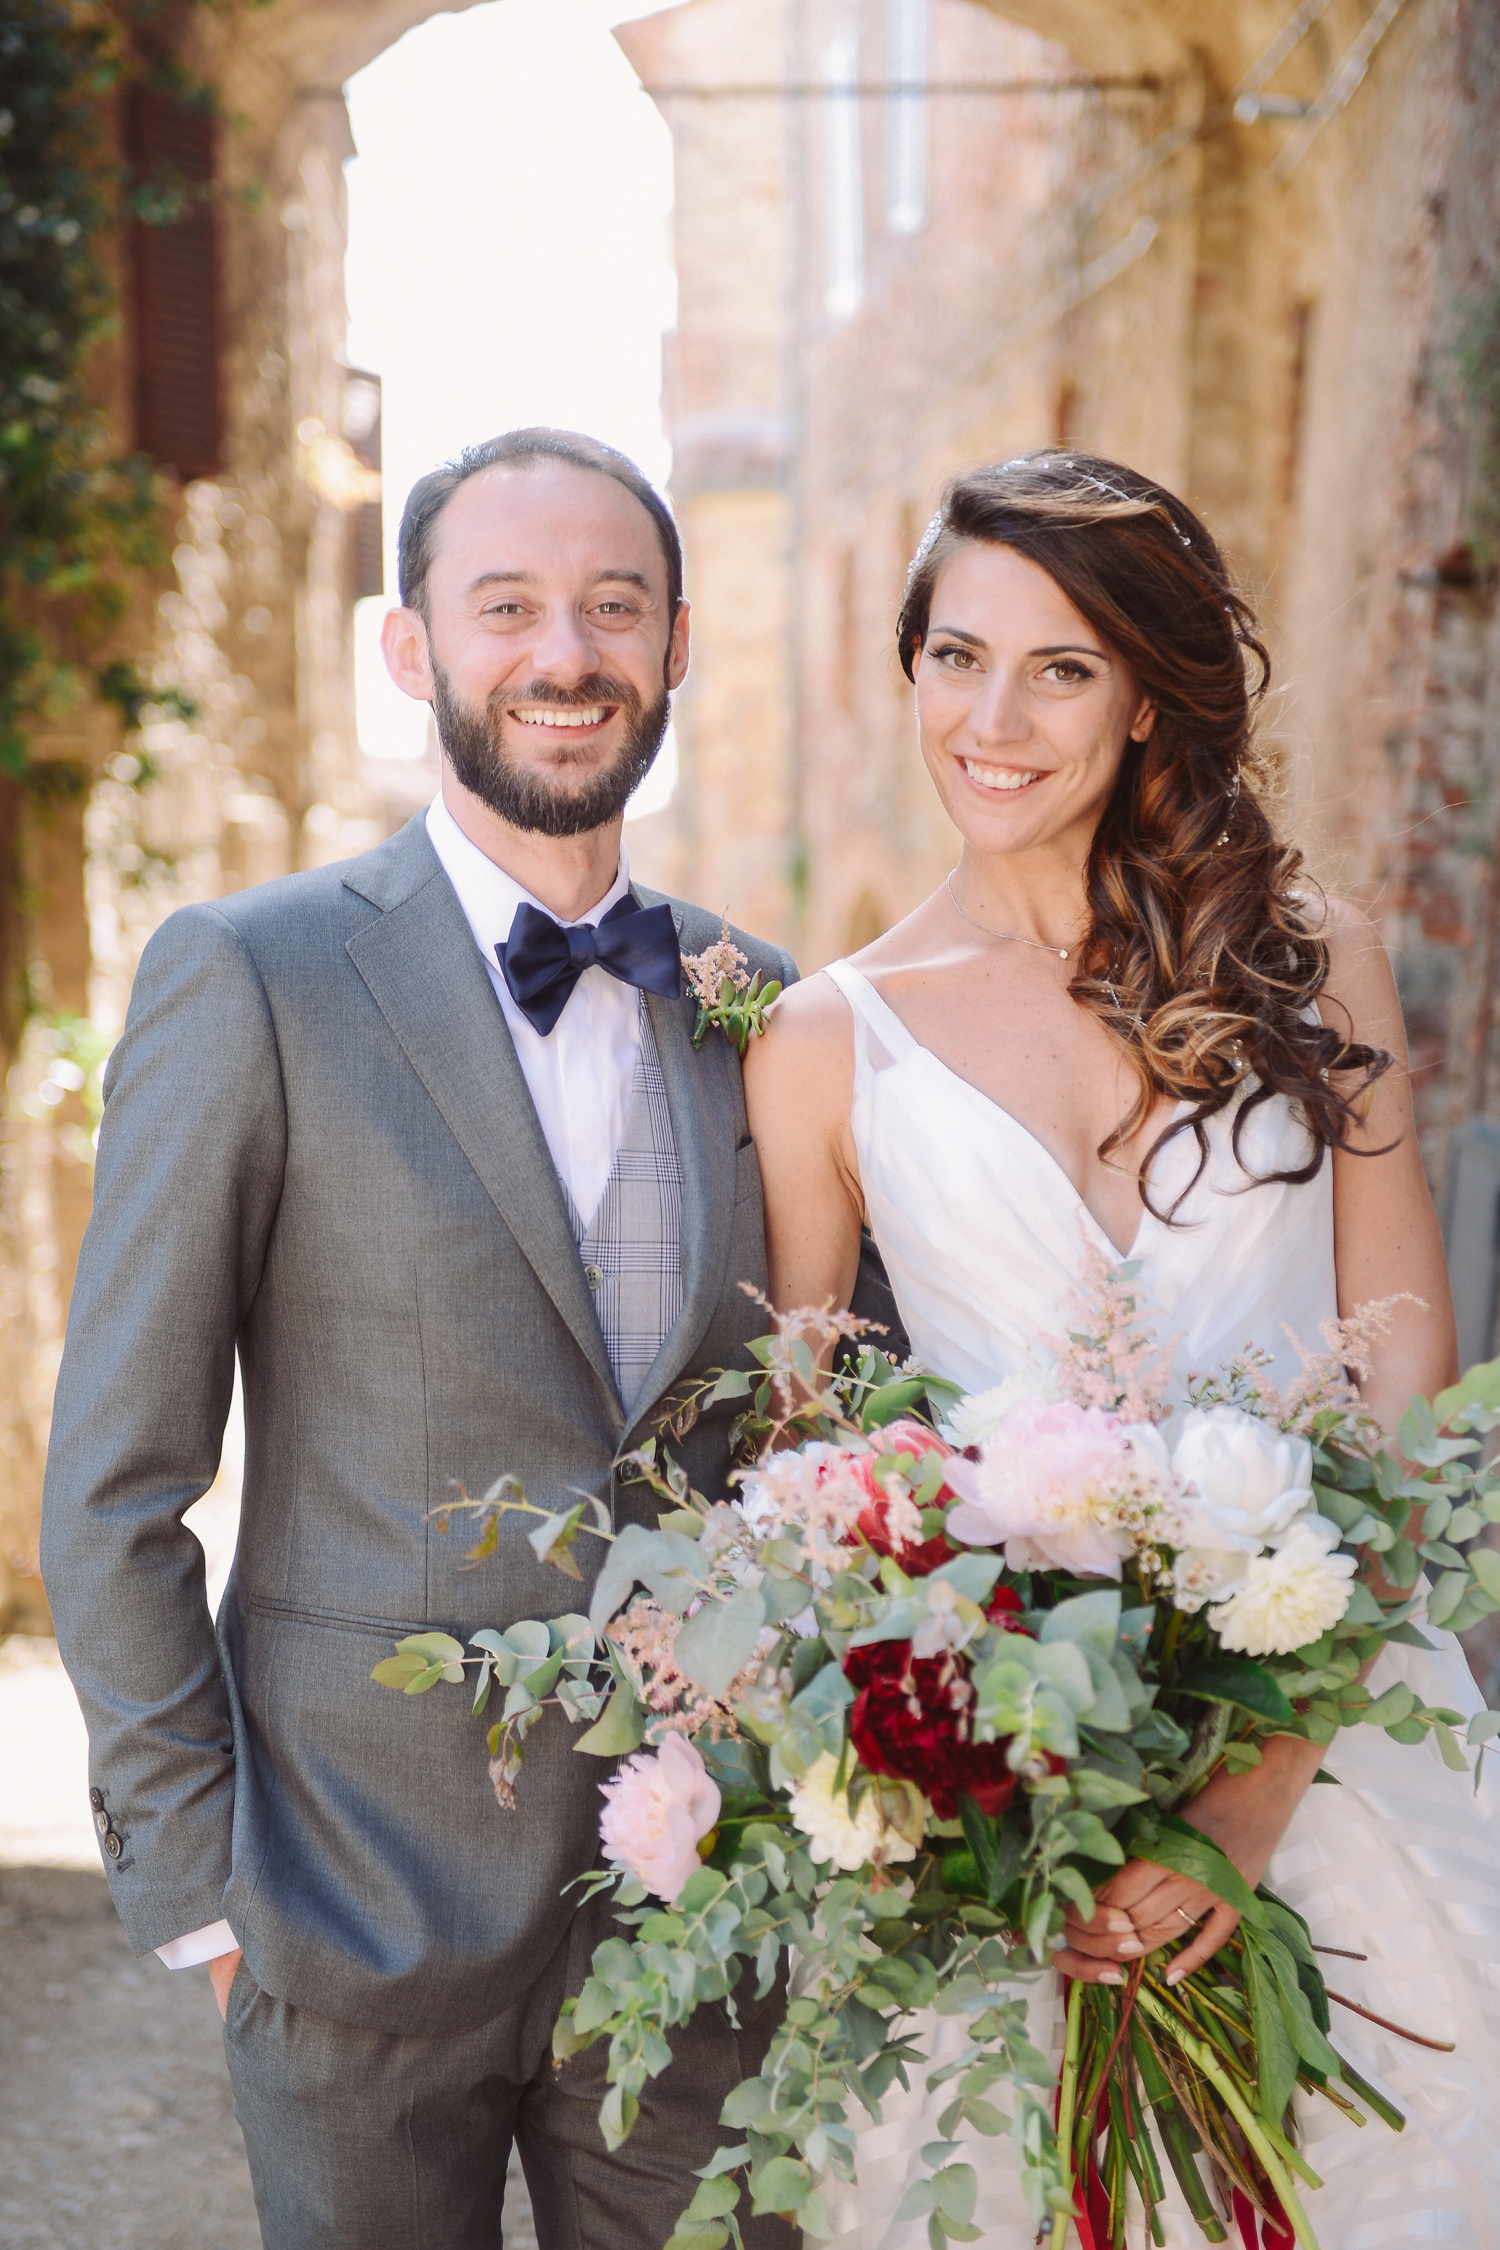 landvphotography-wedding-photographer-tuscany_1877.jpg